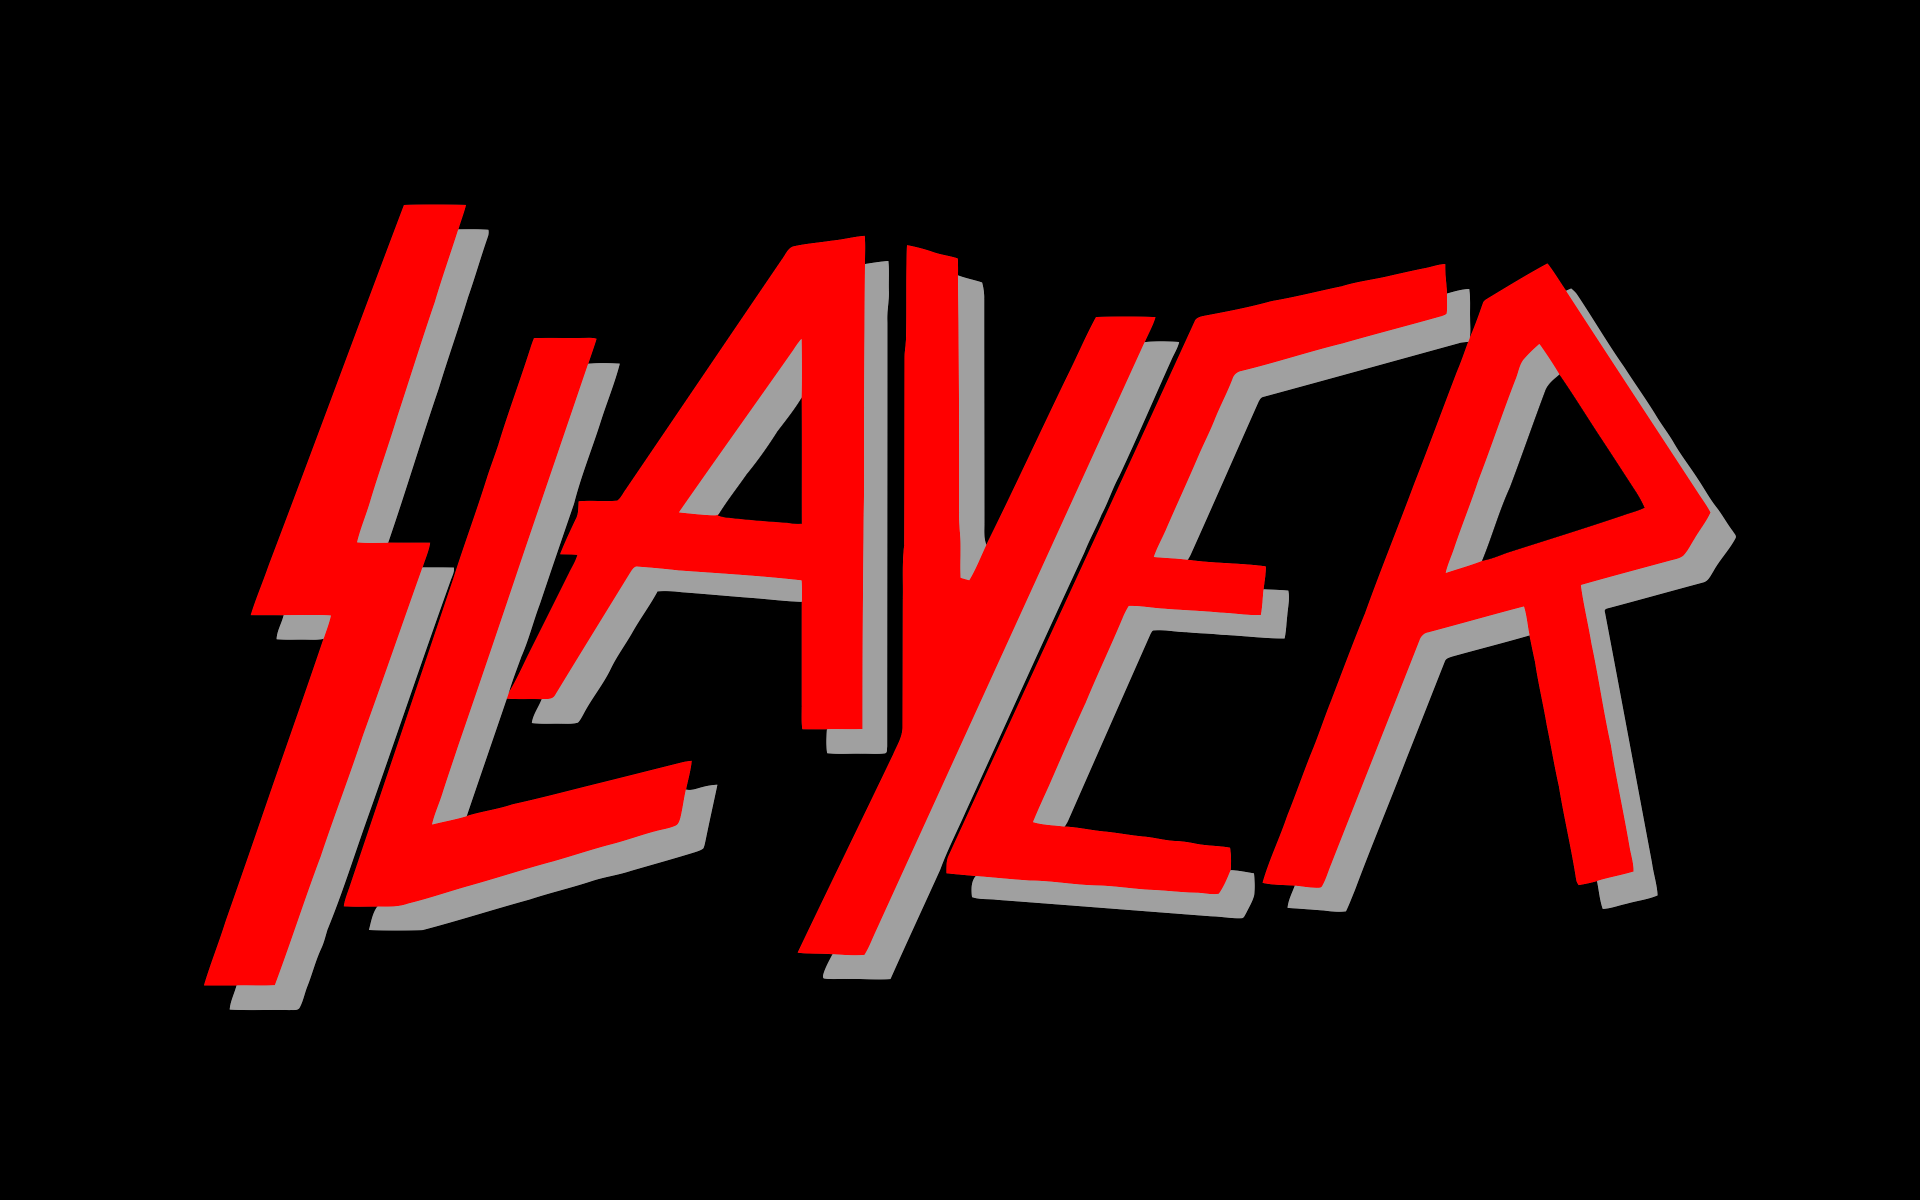 slayer groups bands music heavy metal death hard rock album covers 1920x1200